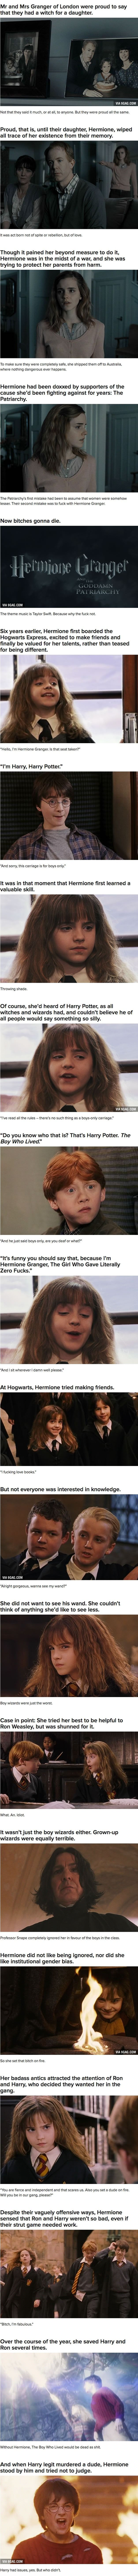 "If Hermione Were The Main Character In ""Harry Potter"" (Part 1 Of 5)"